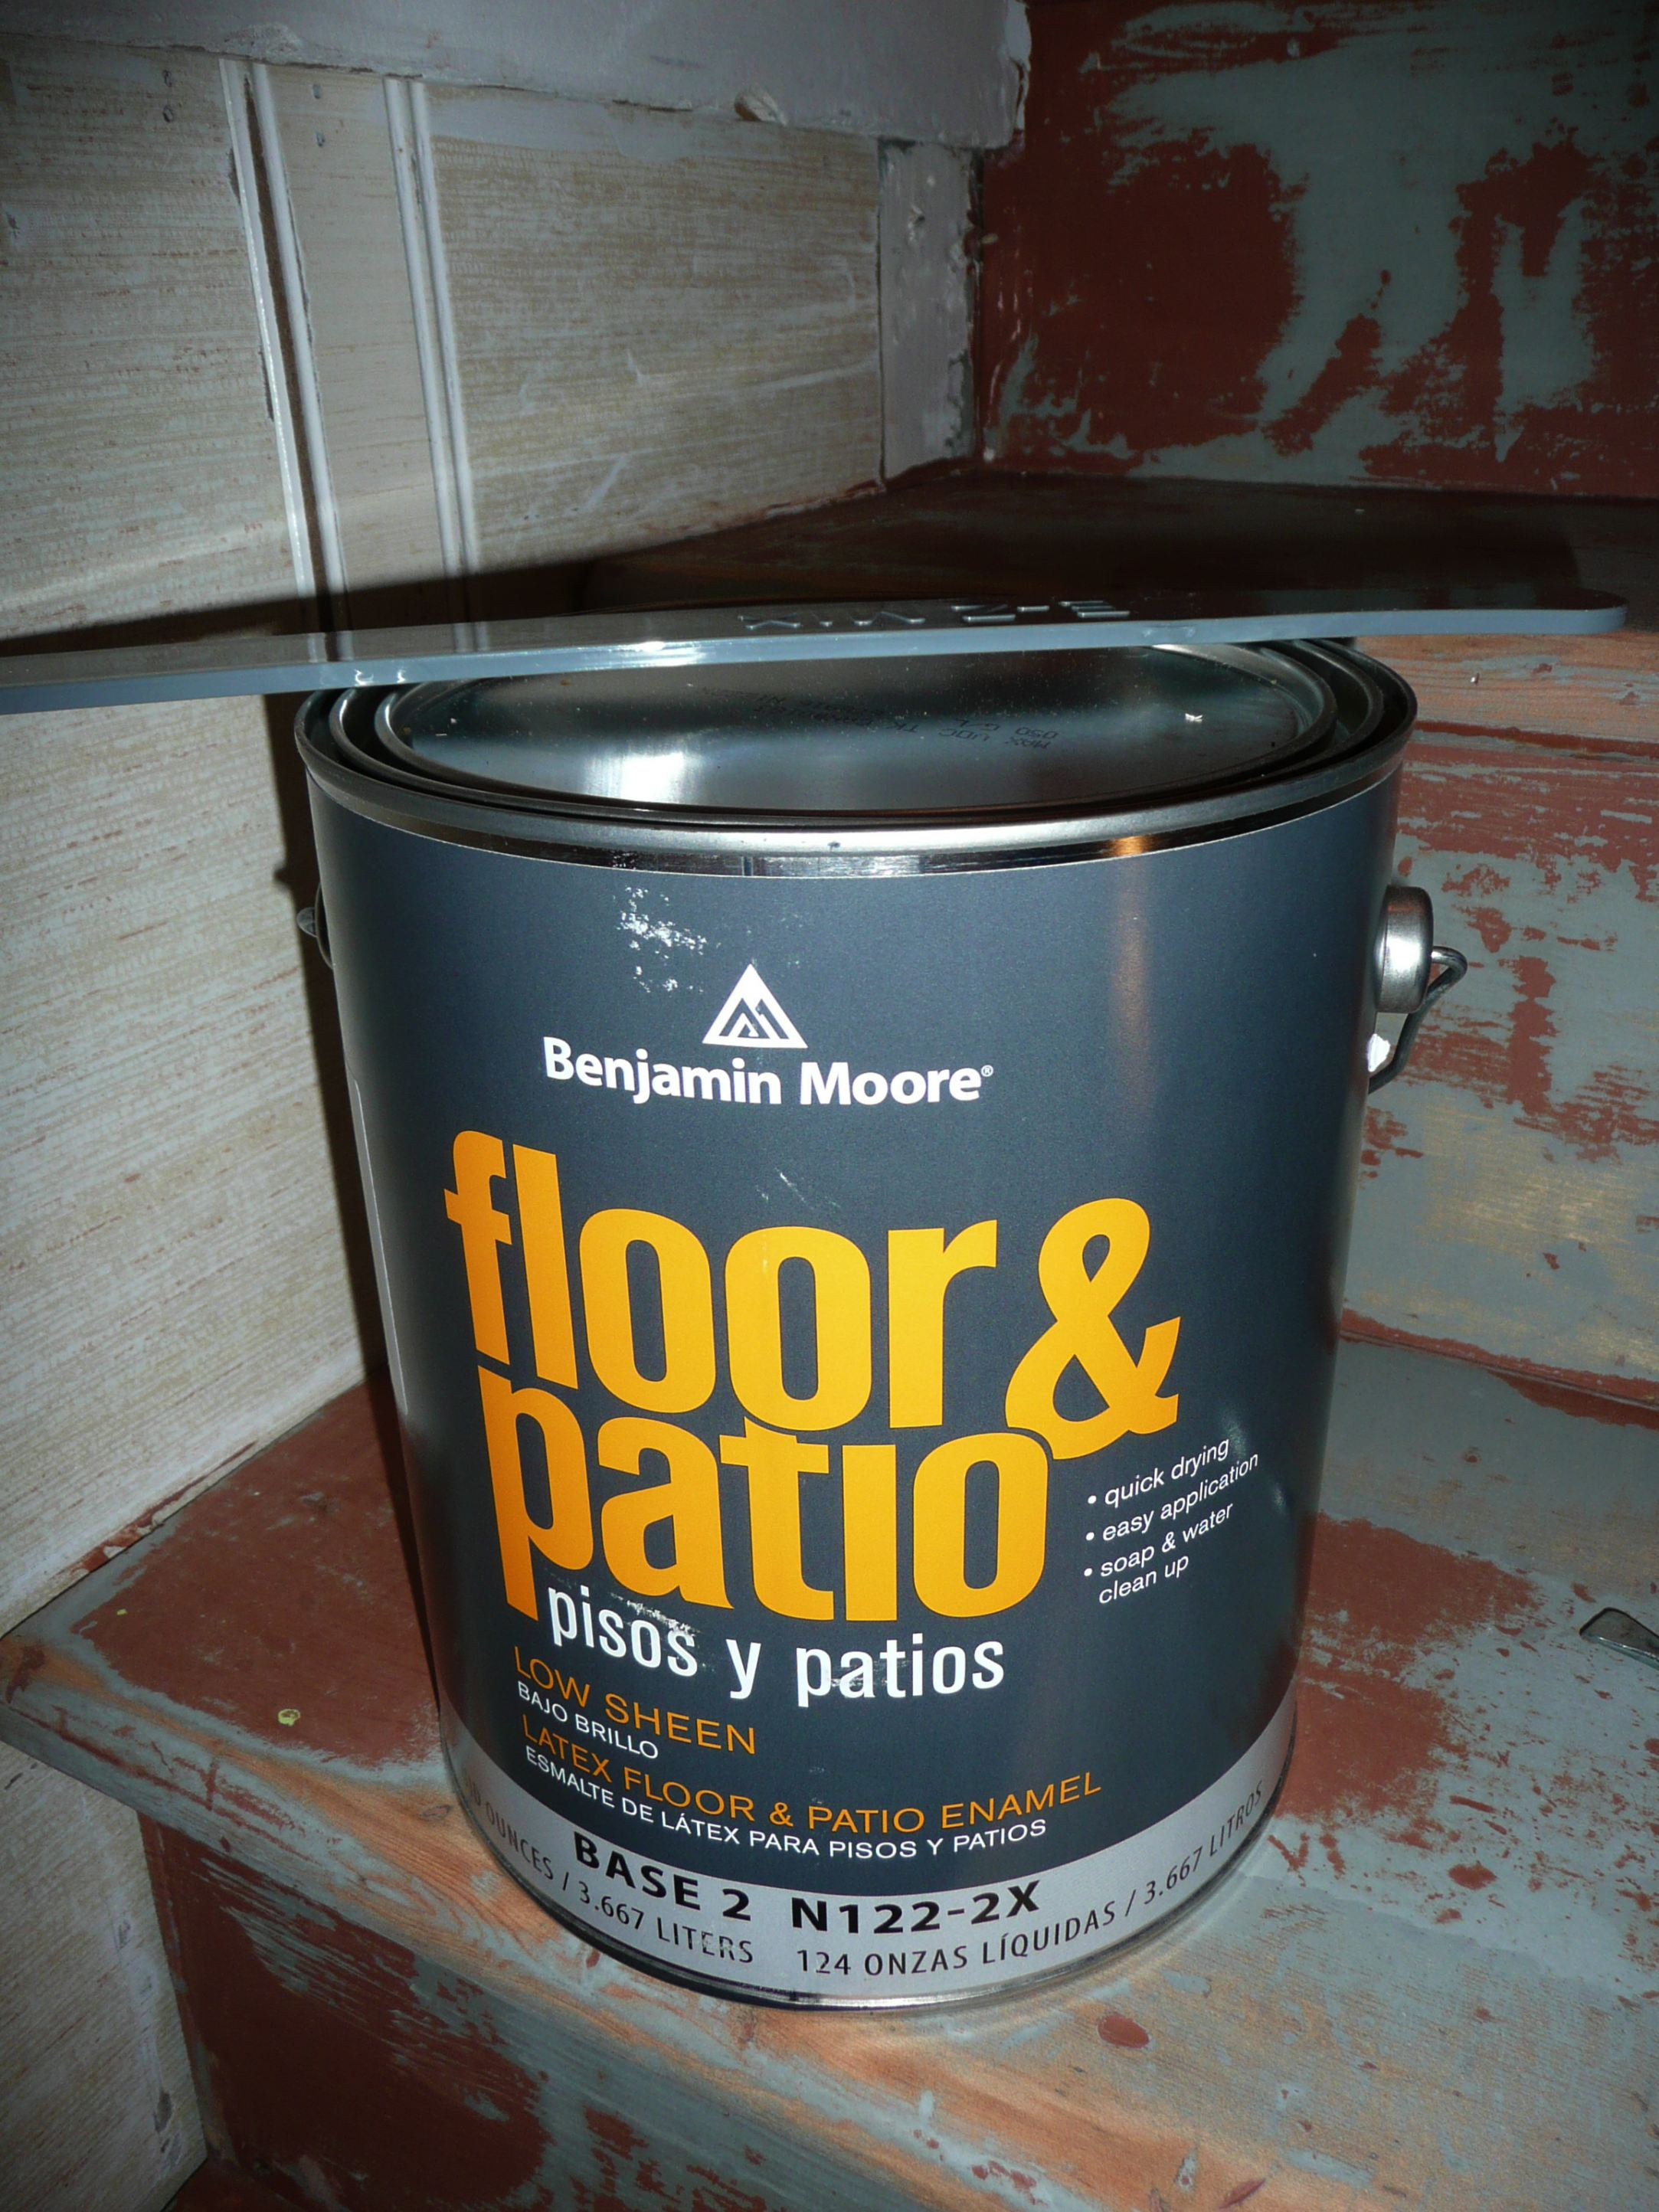 Etonnant Benjamin Moore Floor And Patio Paint 2 Ultramodern Photo Of 5 Throughout  Sizing 2166 X 2888